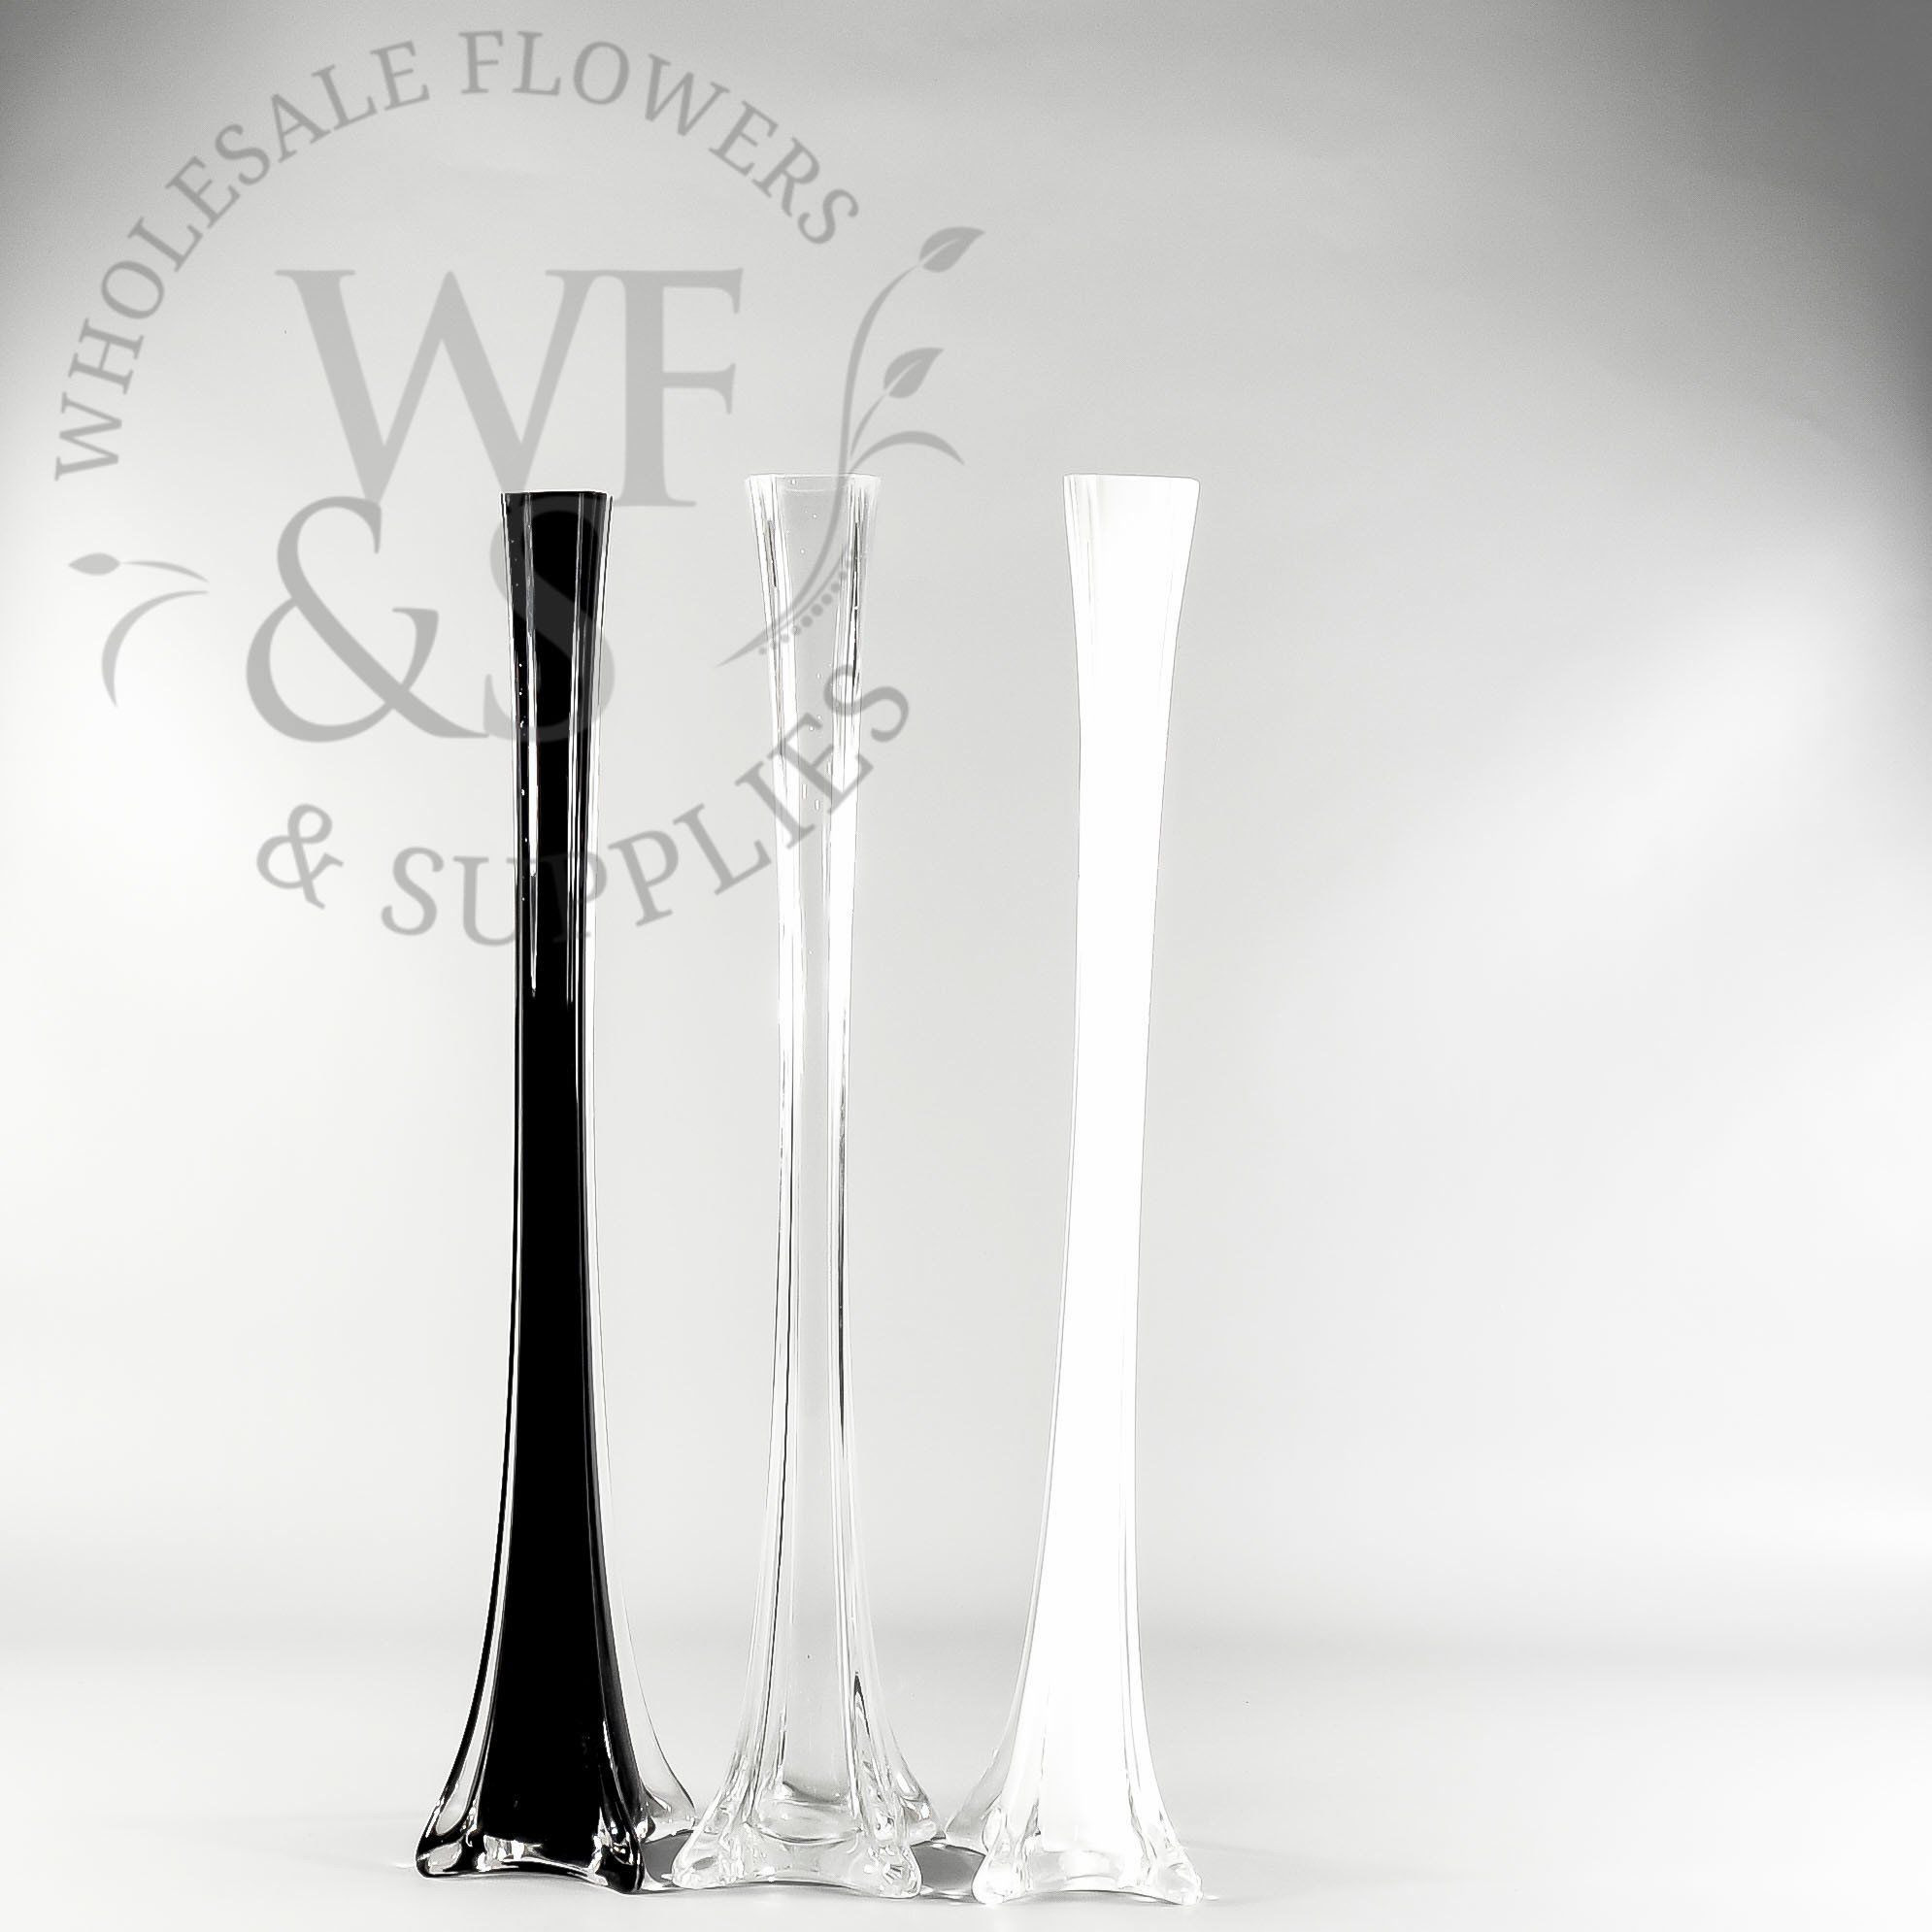 Black Trumpet Vases In Bulk Of Eiffel tower Glass Vase 20in Flower Bouquet Ideas Pinterest In 20 Glass Eiffel tower Vase Our Price 4 50 Height 20 Opening Diameter